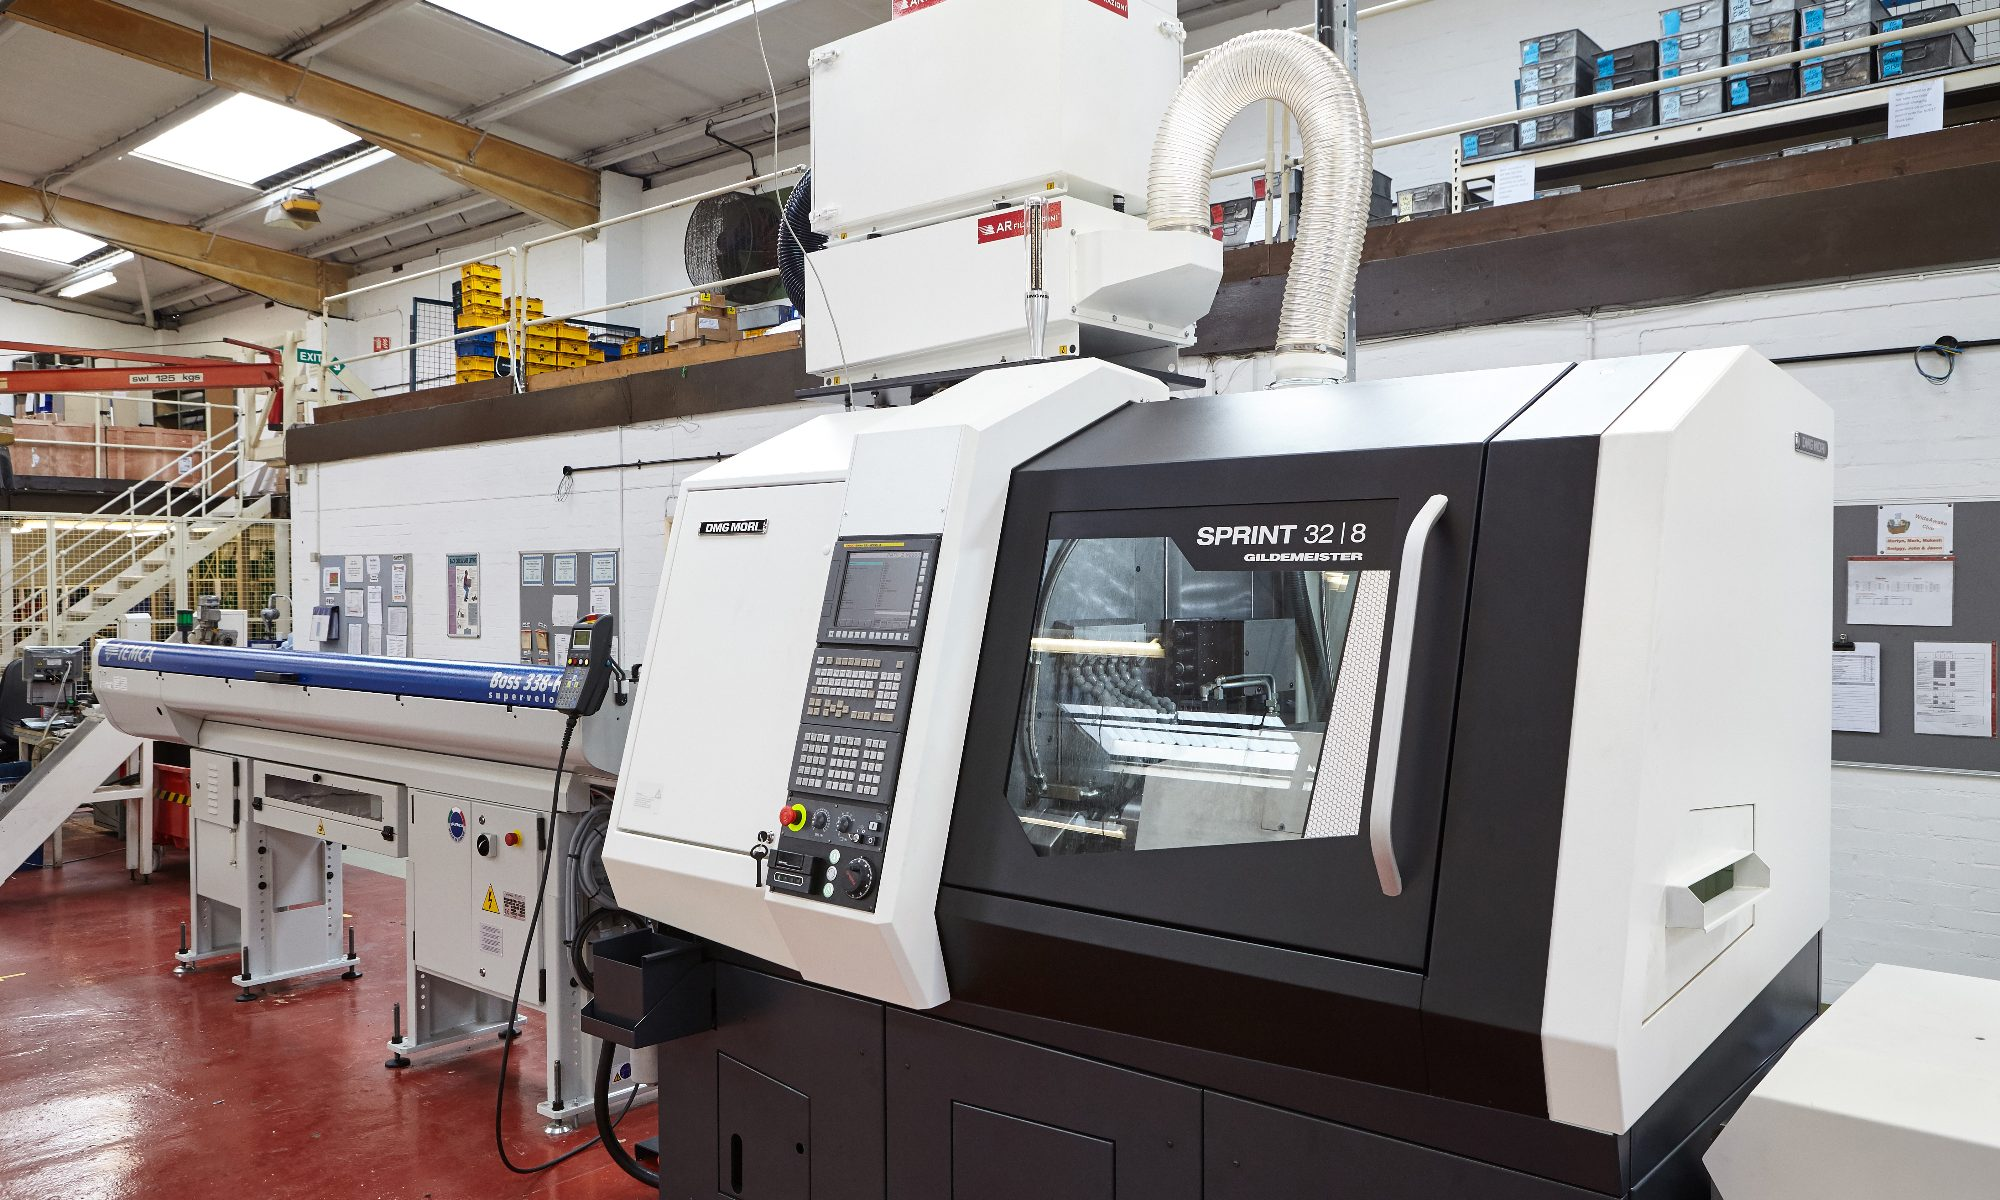 Camloc new CNC Lathe machine 06.11.17 2000x1200 - We have invested in a new CNC Lathe to enhance production capability and flexibility for future product development